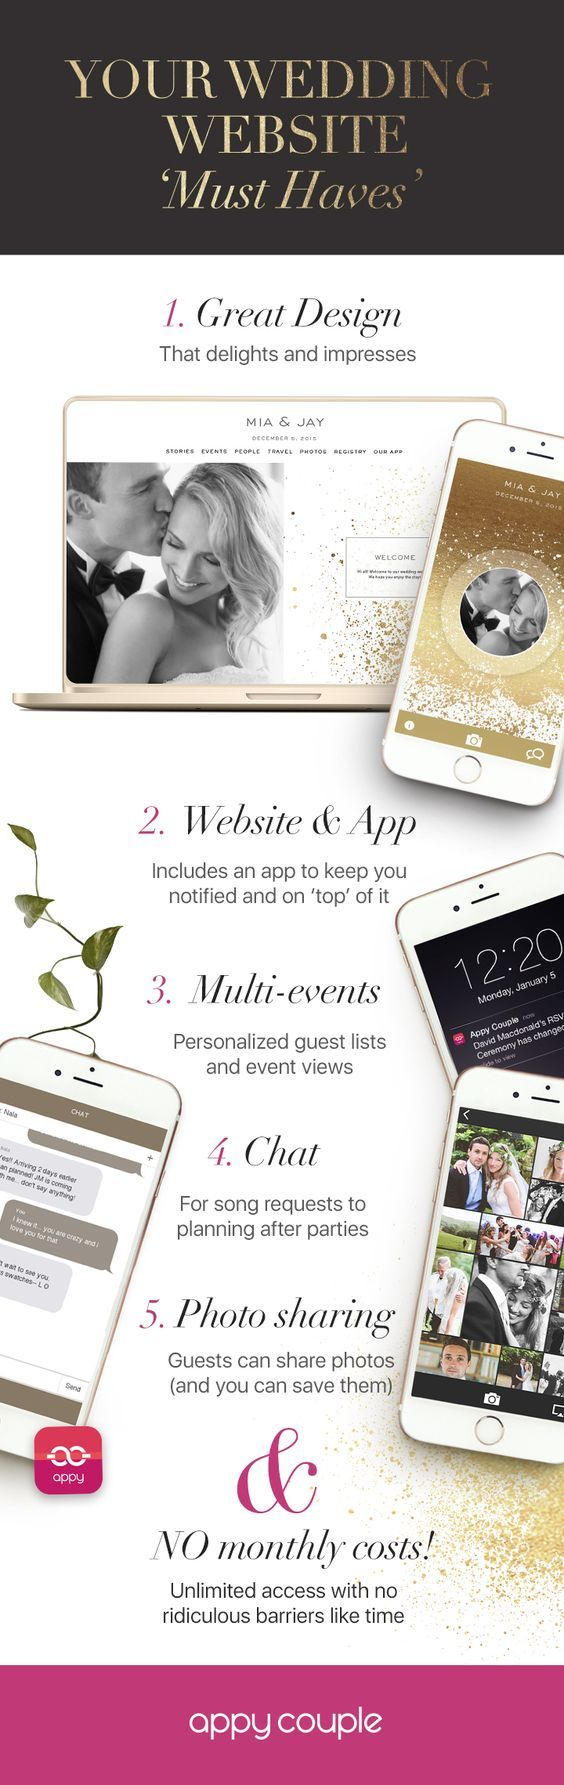 If You Are Looking For A Great Site To Create The Chicest Wedding Website Make Sure Check Out Appy Couples